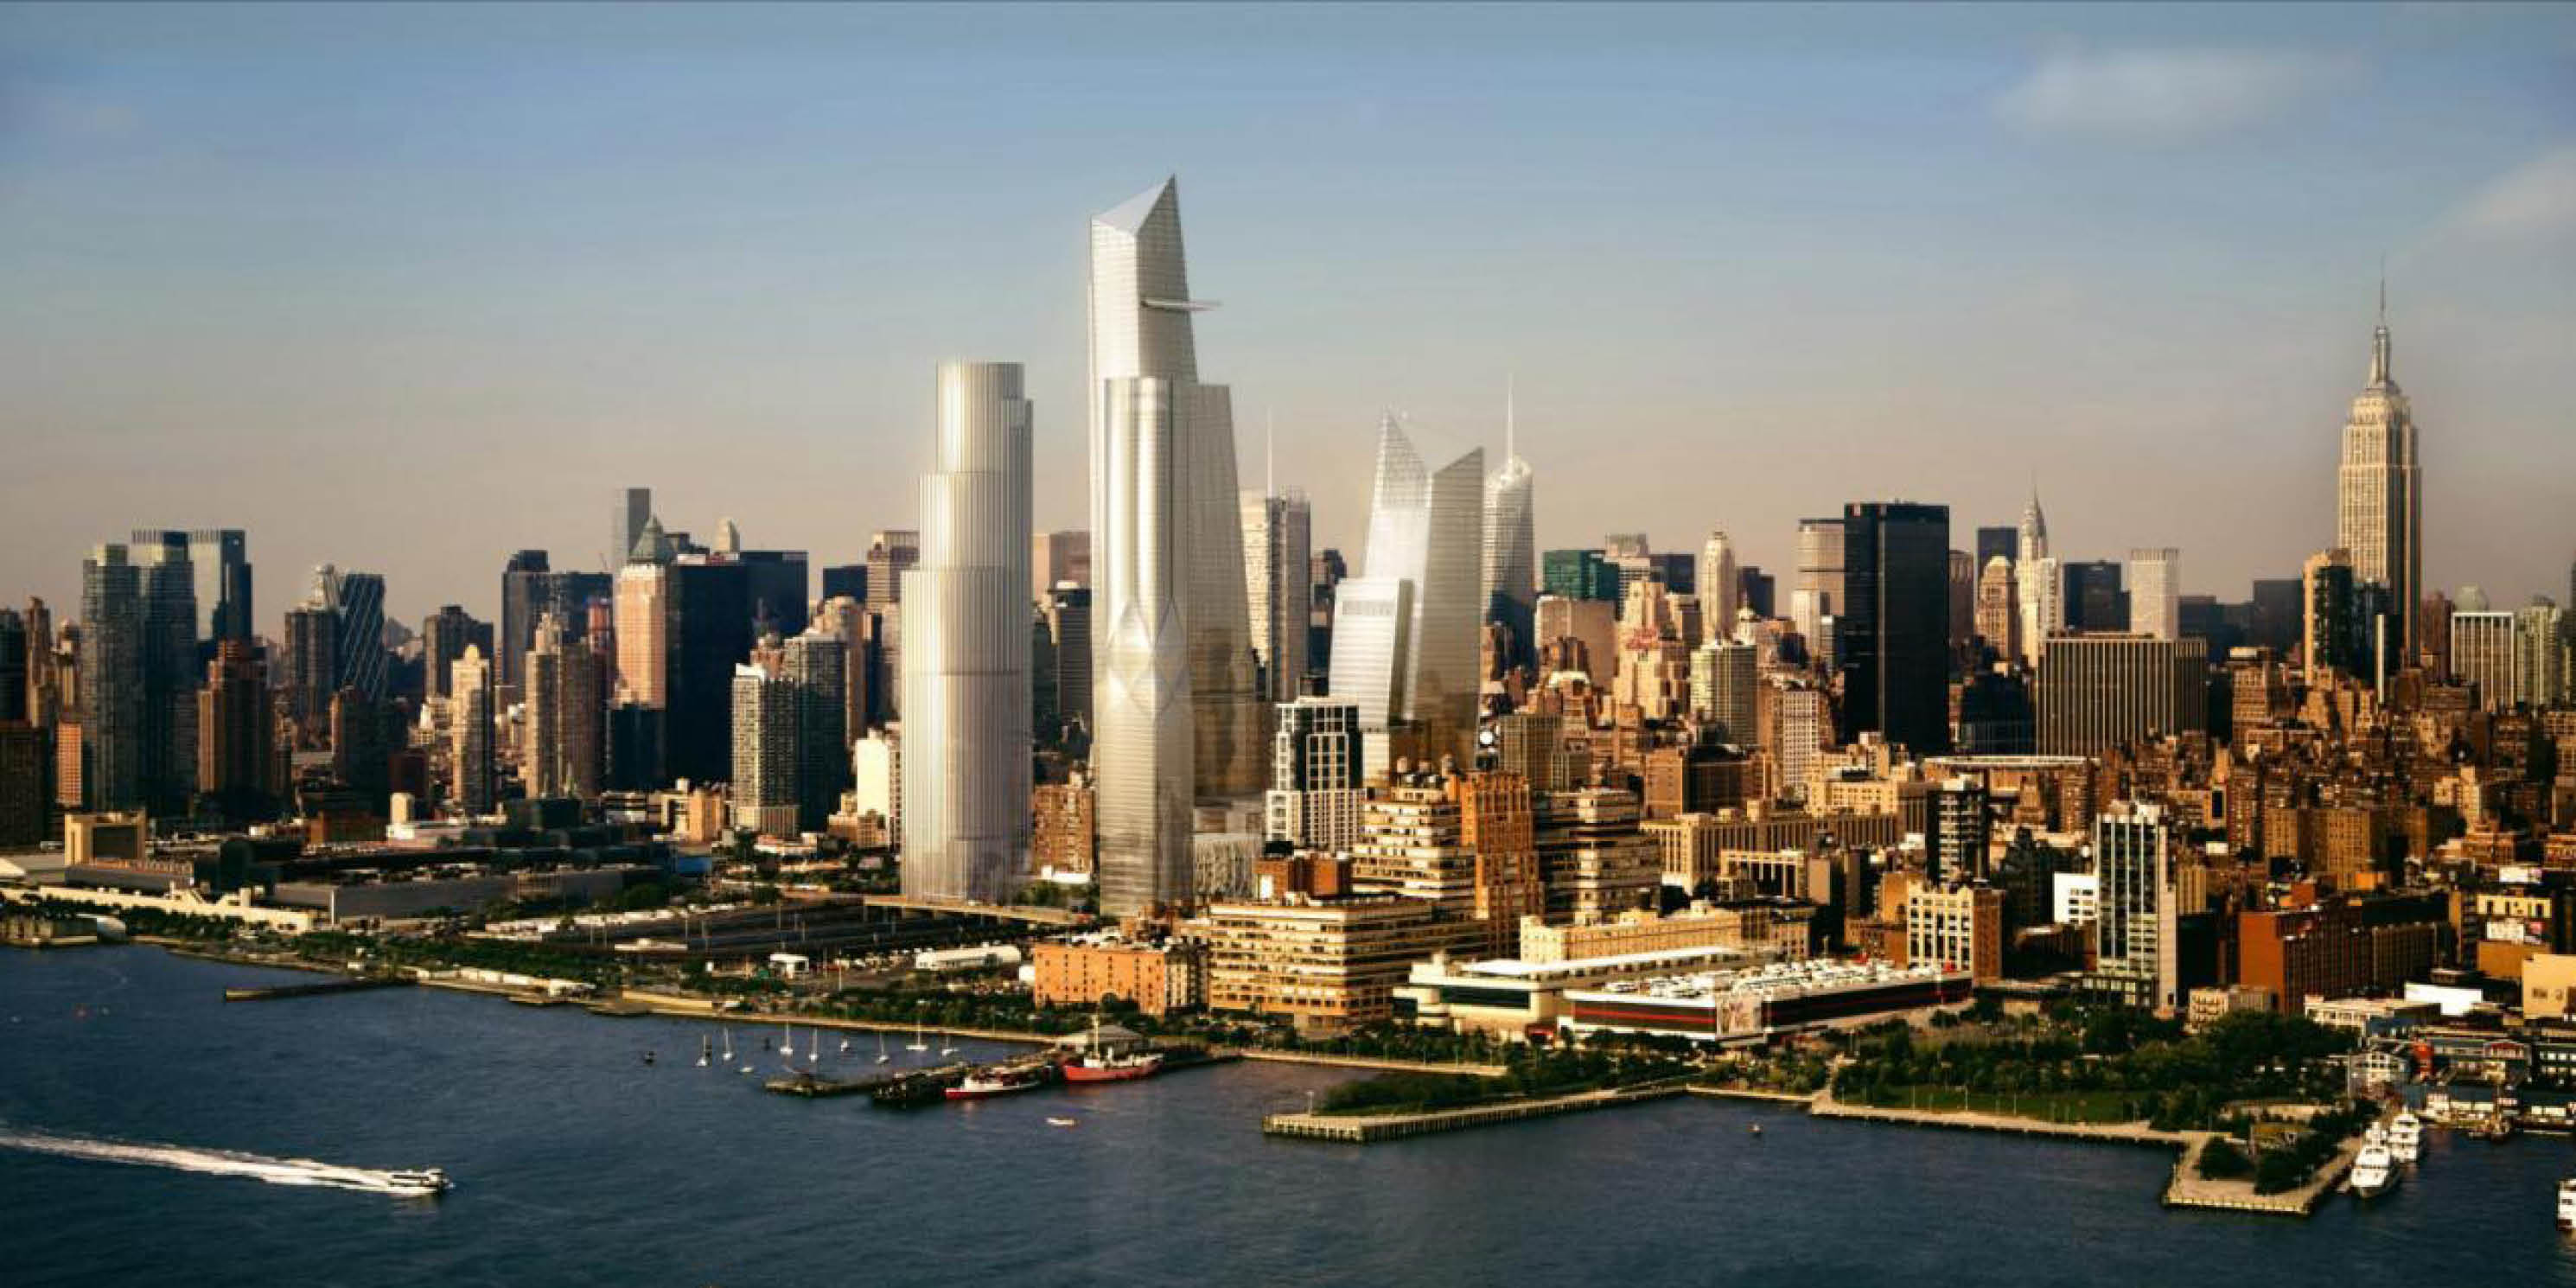 rendering of the skyline at Hudson Yards